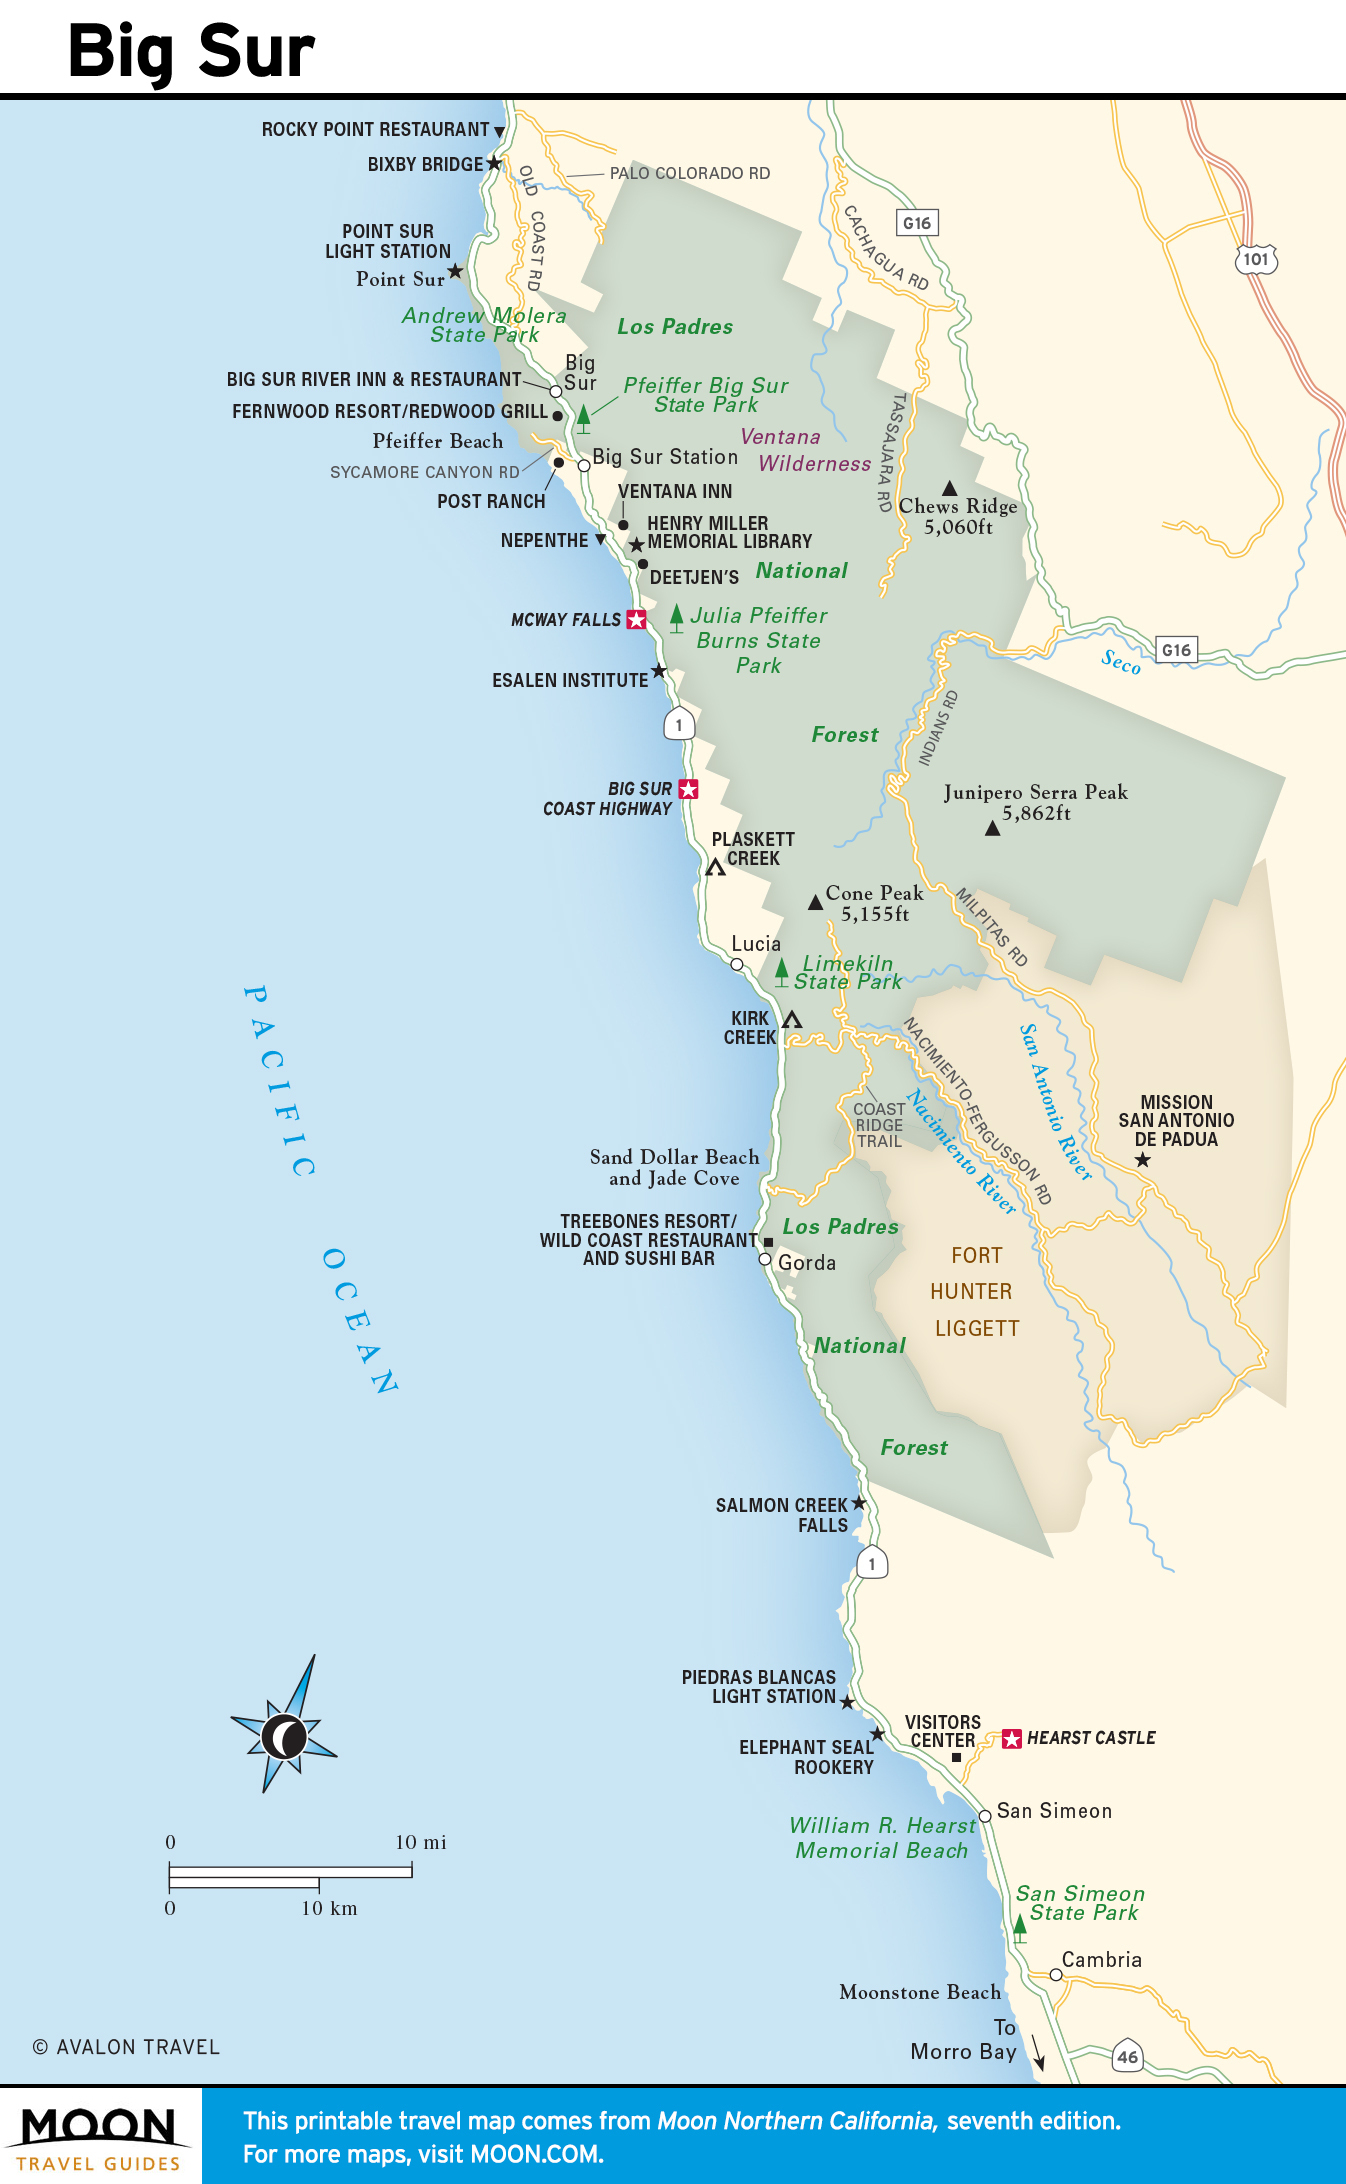 Big Sur High-Quality Map Of Map Of Central California Coast - Klipy - Map Of Central California Coast Towns